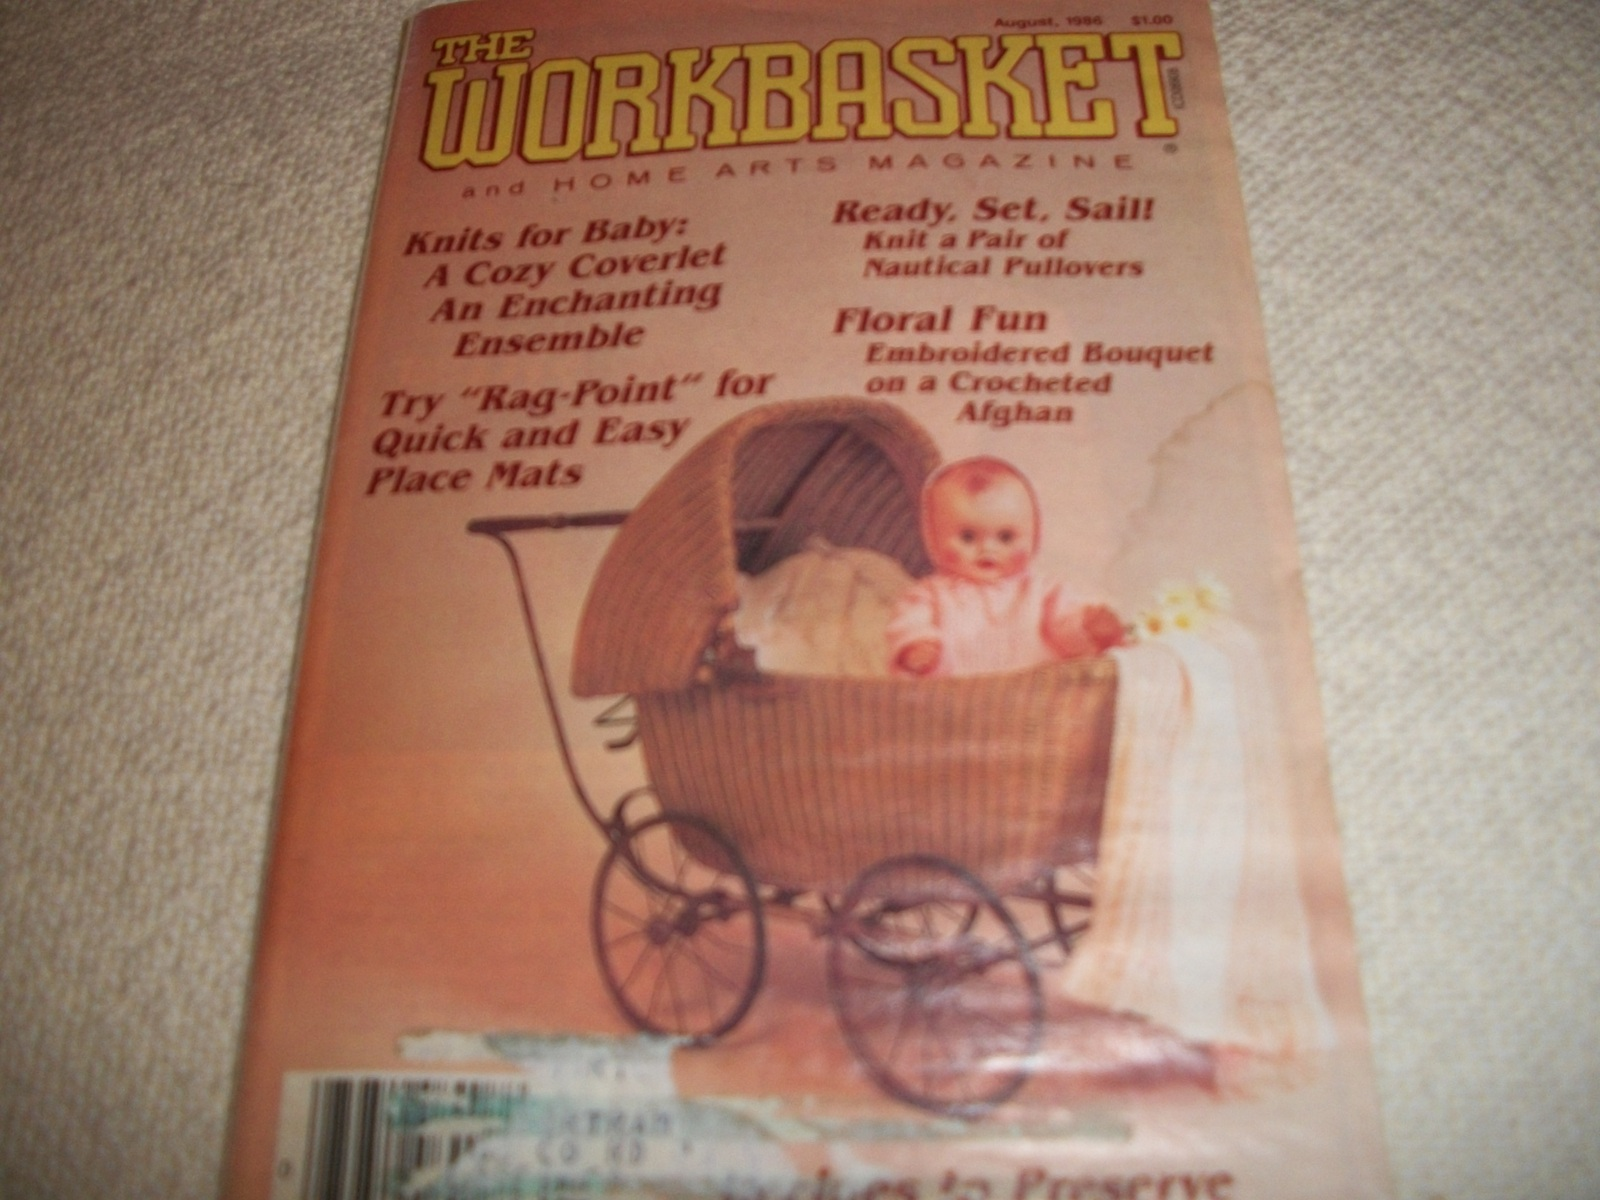 Workbasket Magazine August 1986 and similar items